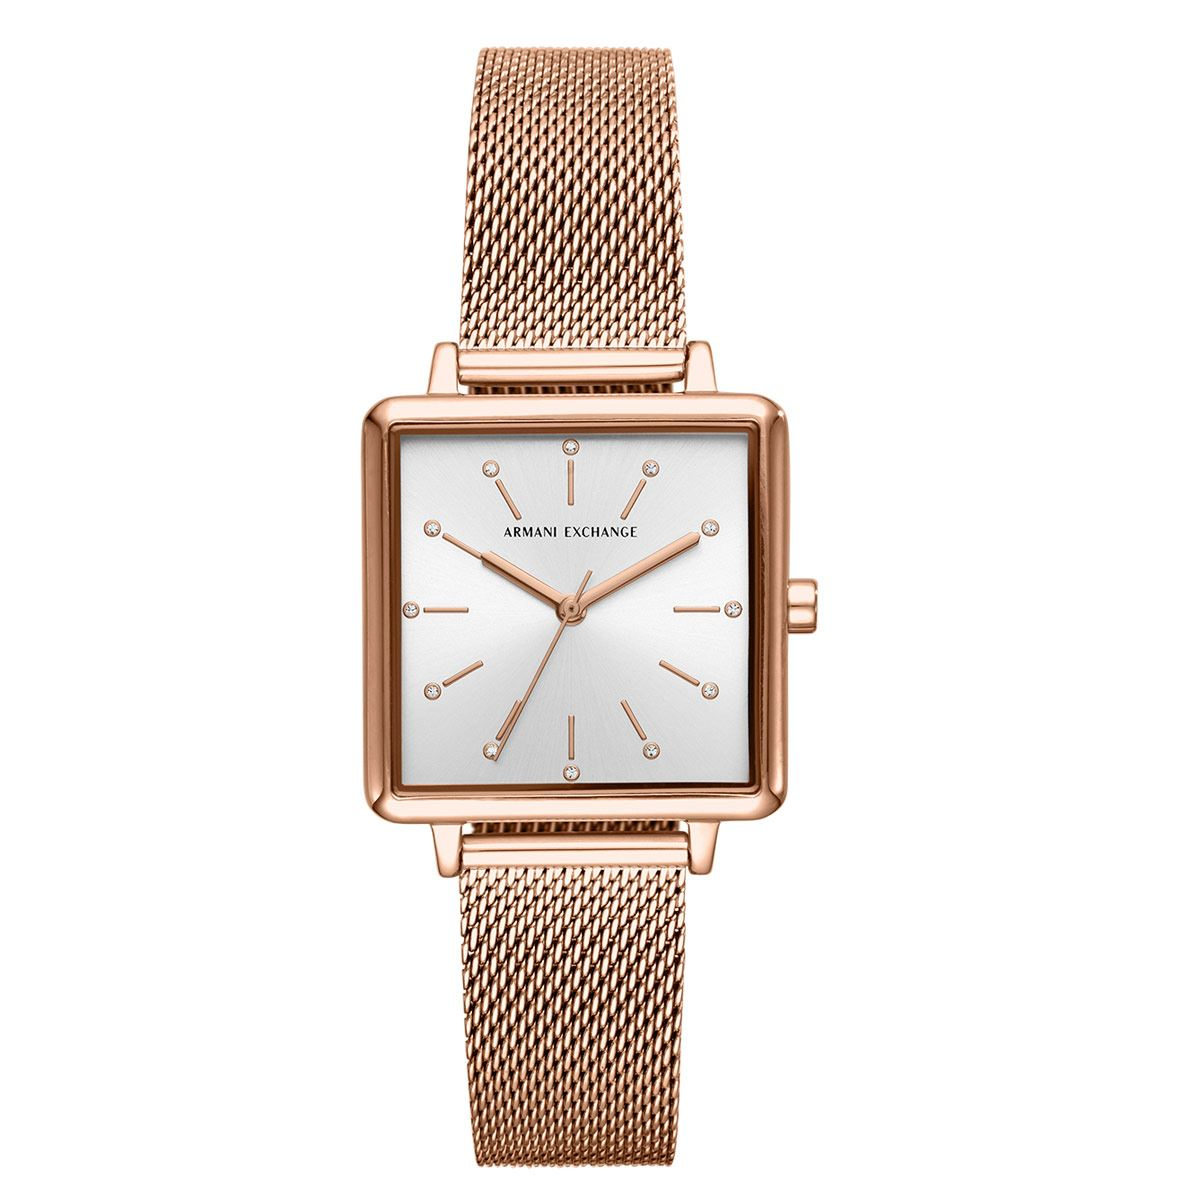 Reloj Armani Exchange AX5802 Color Oro Rosa Para Dama